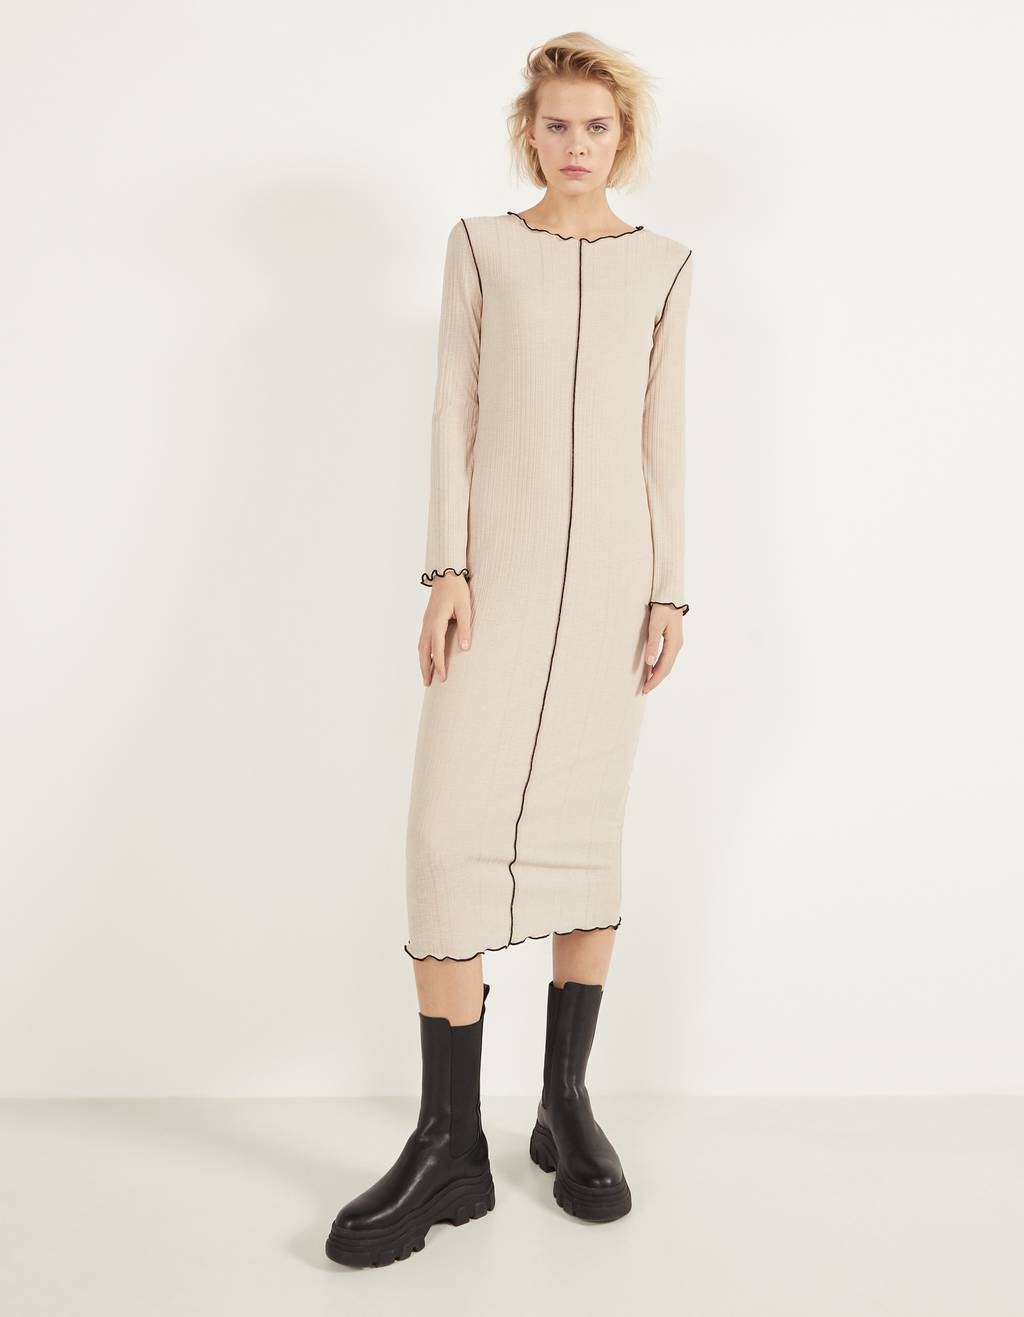 Ribbed dress with seam detail